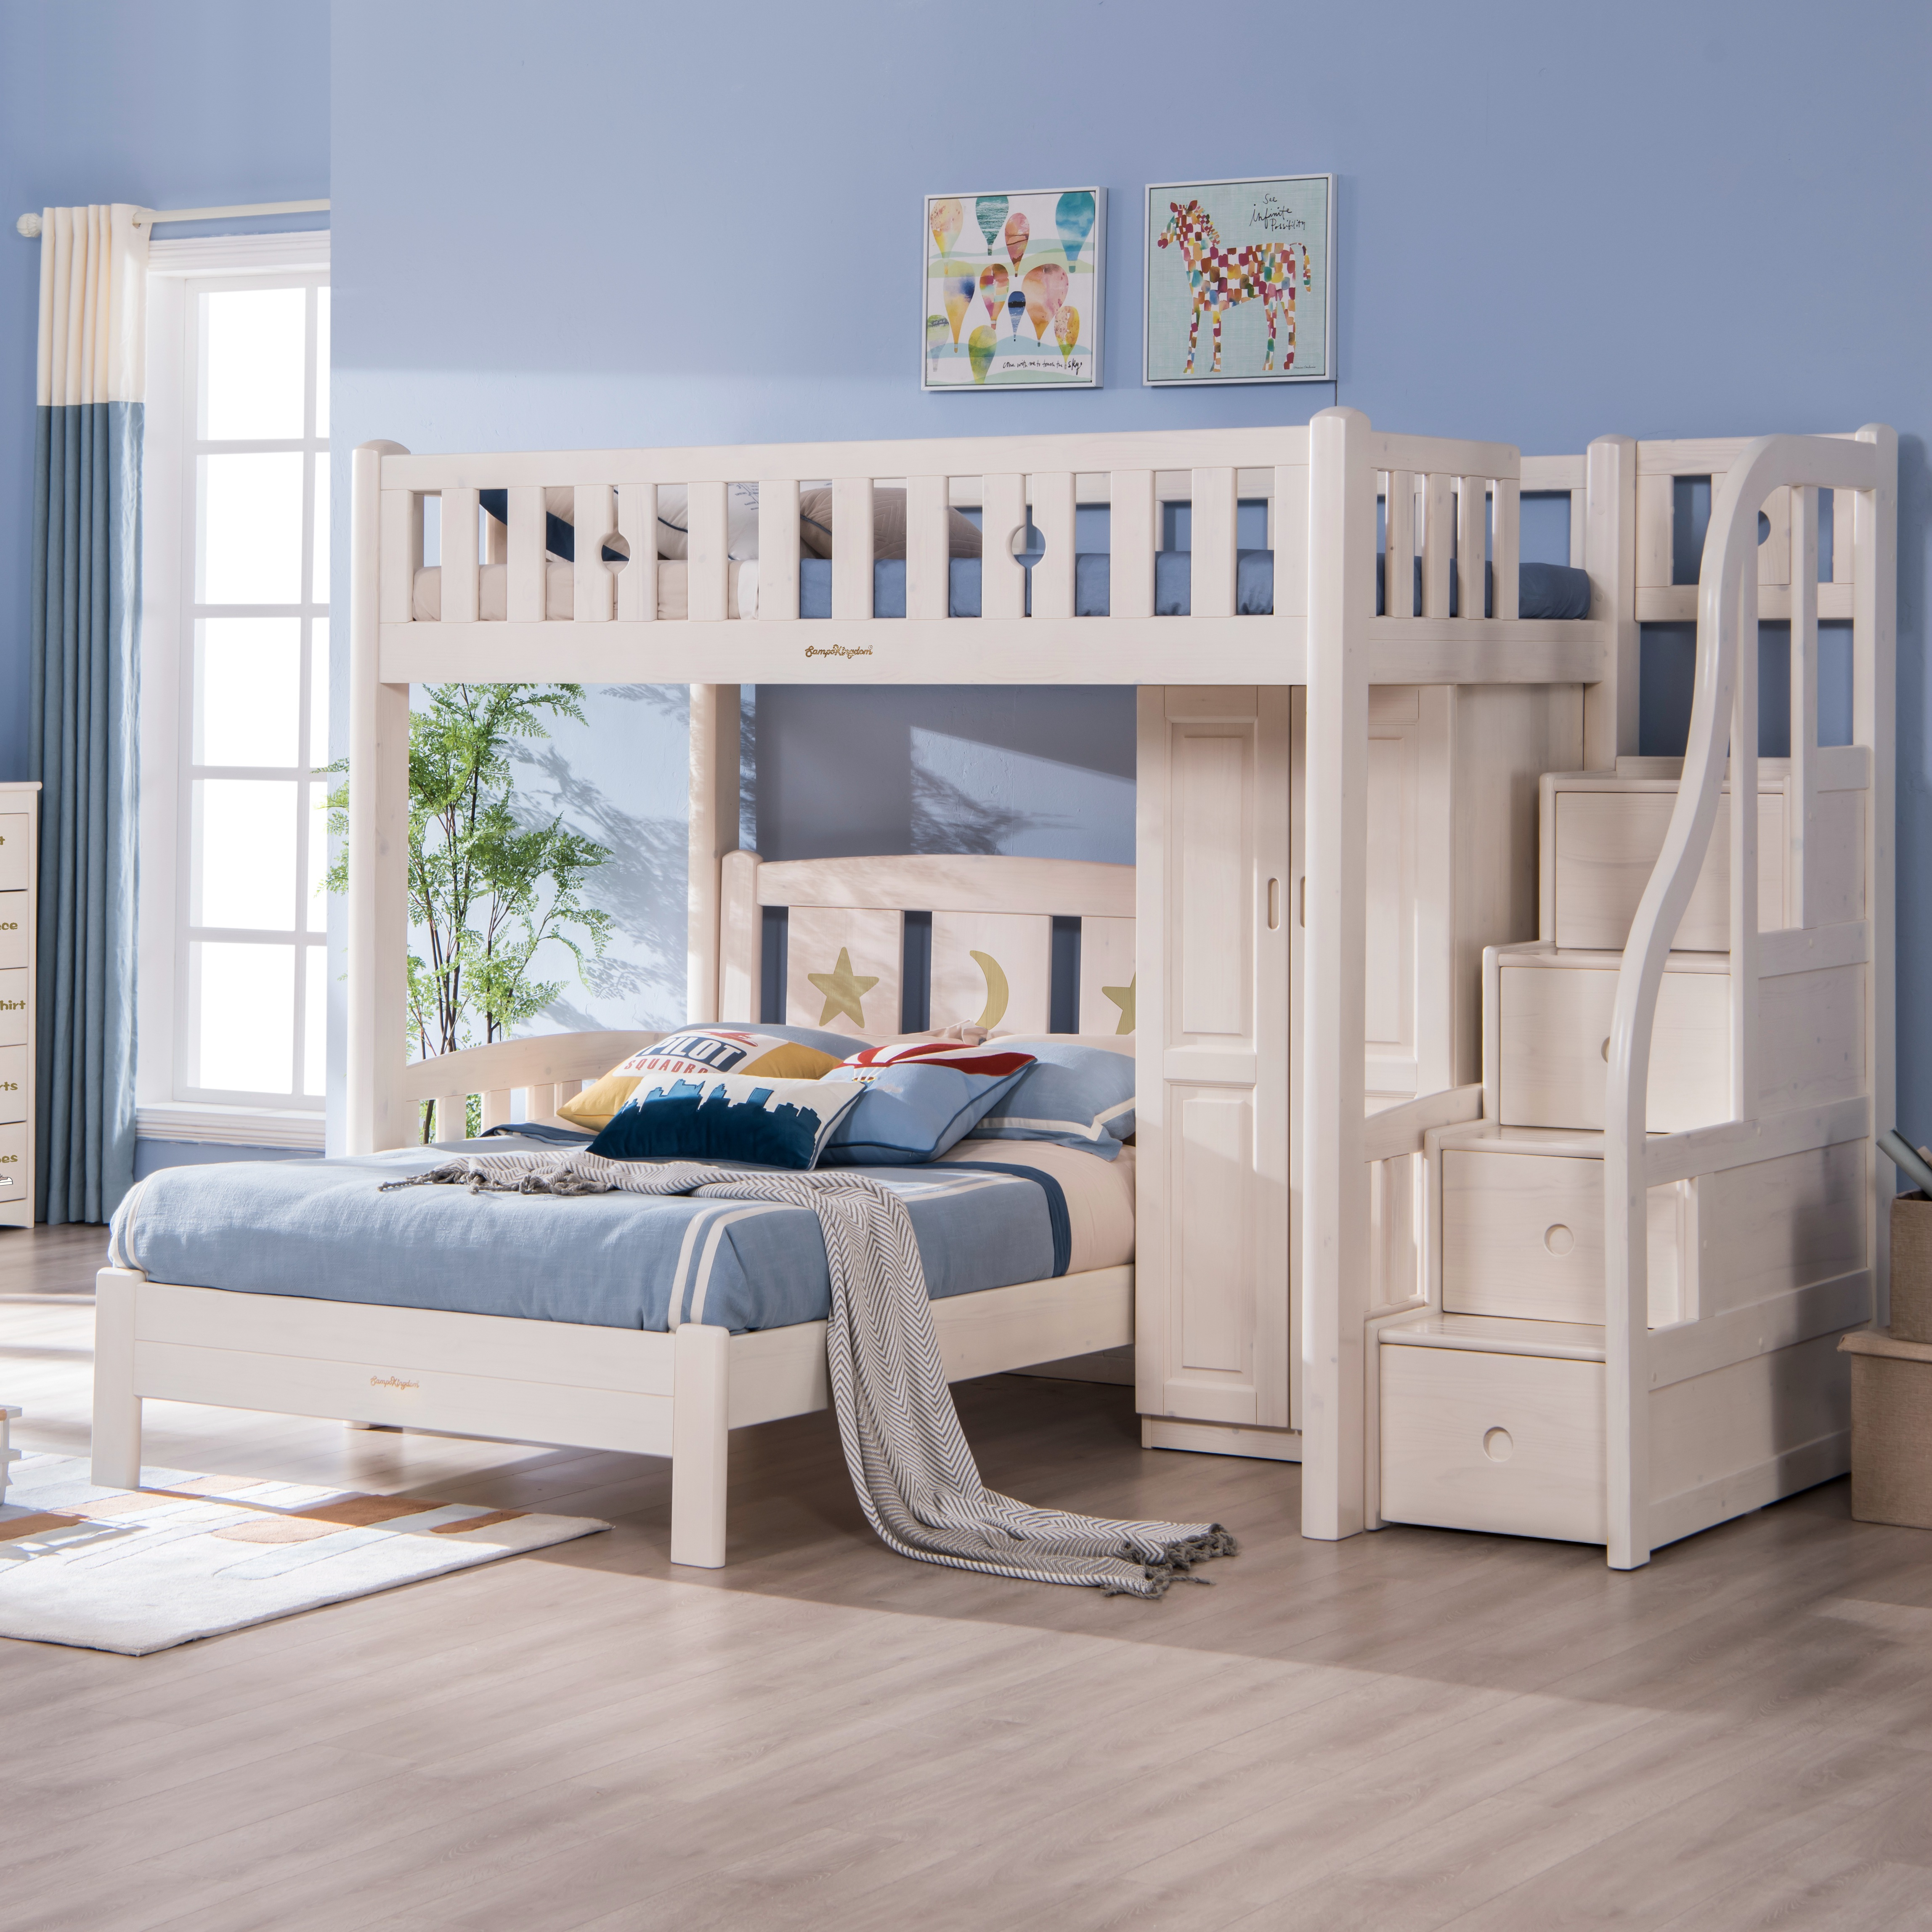 Picture of: Children Bunk Bed Solid Wood Triple Bunk Bed Solid Wood Furniture Bunk Bed Buy Twin Double Deck Bed Kids Furniture Cheap Bunk Beds Wooden Kid Double Deck Bed Product On Alibaba Com